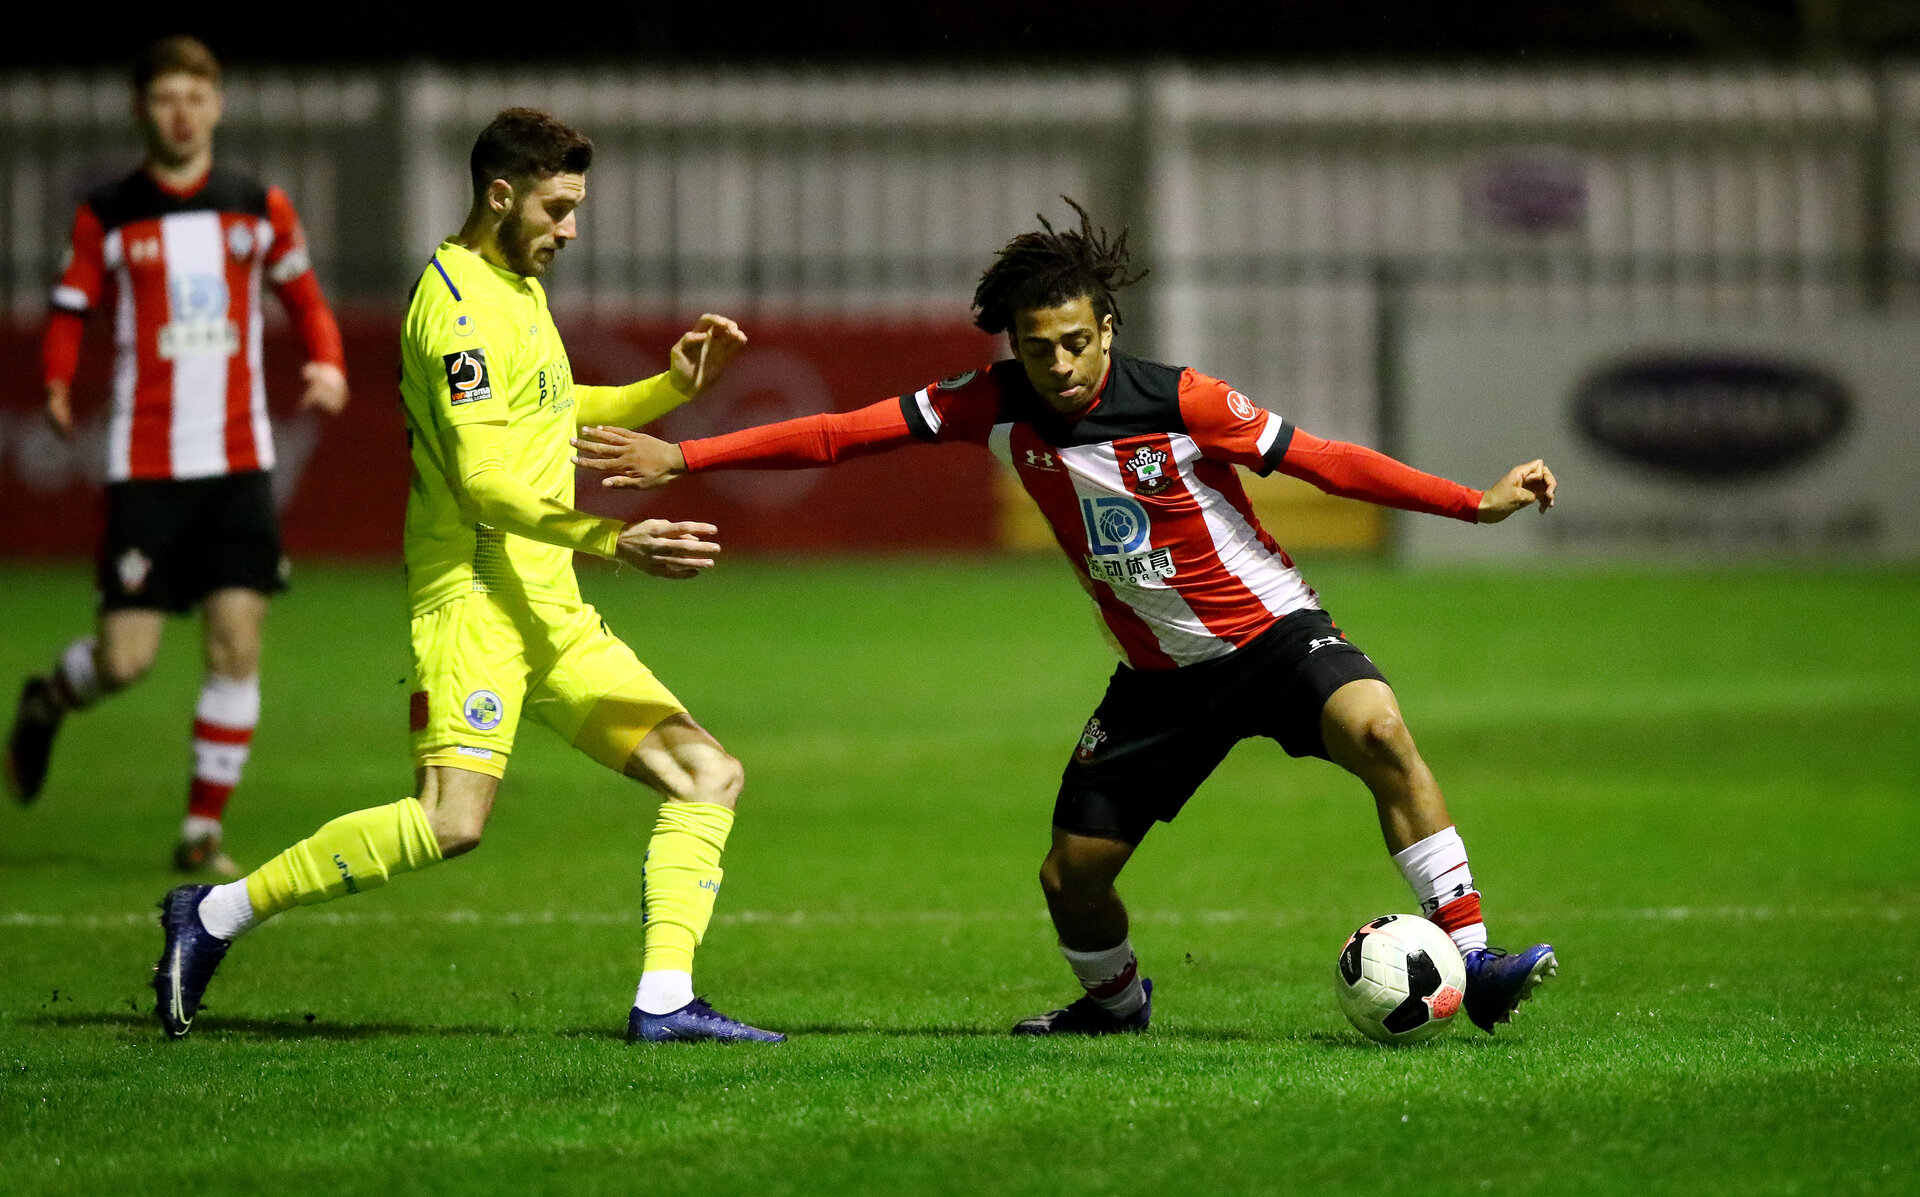 SOUTHAMPTON, ENGLAND - FEBRUARY 18: Caleb Watts of Southampton during the Hampshire Senior Cup match between Southampton FC and Havant and Waterlooville at the Snows Stadium, Totton, on February 18, 2020 in Southampton, England. (Photo by Matt Watson/Southampton FC via Getty Images)